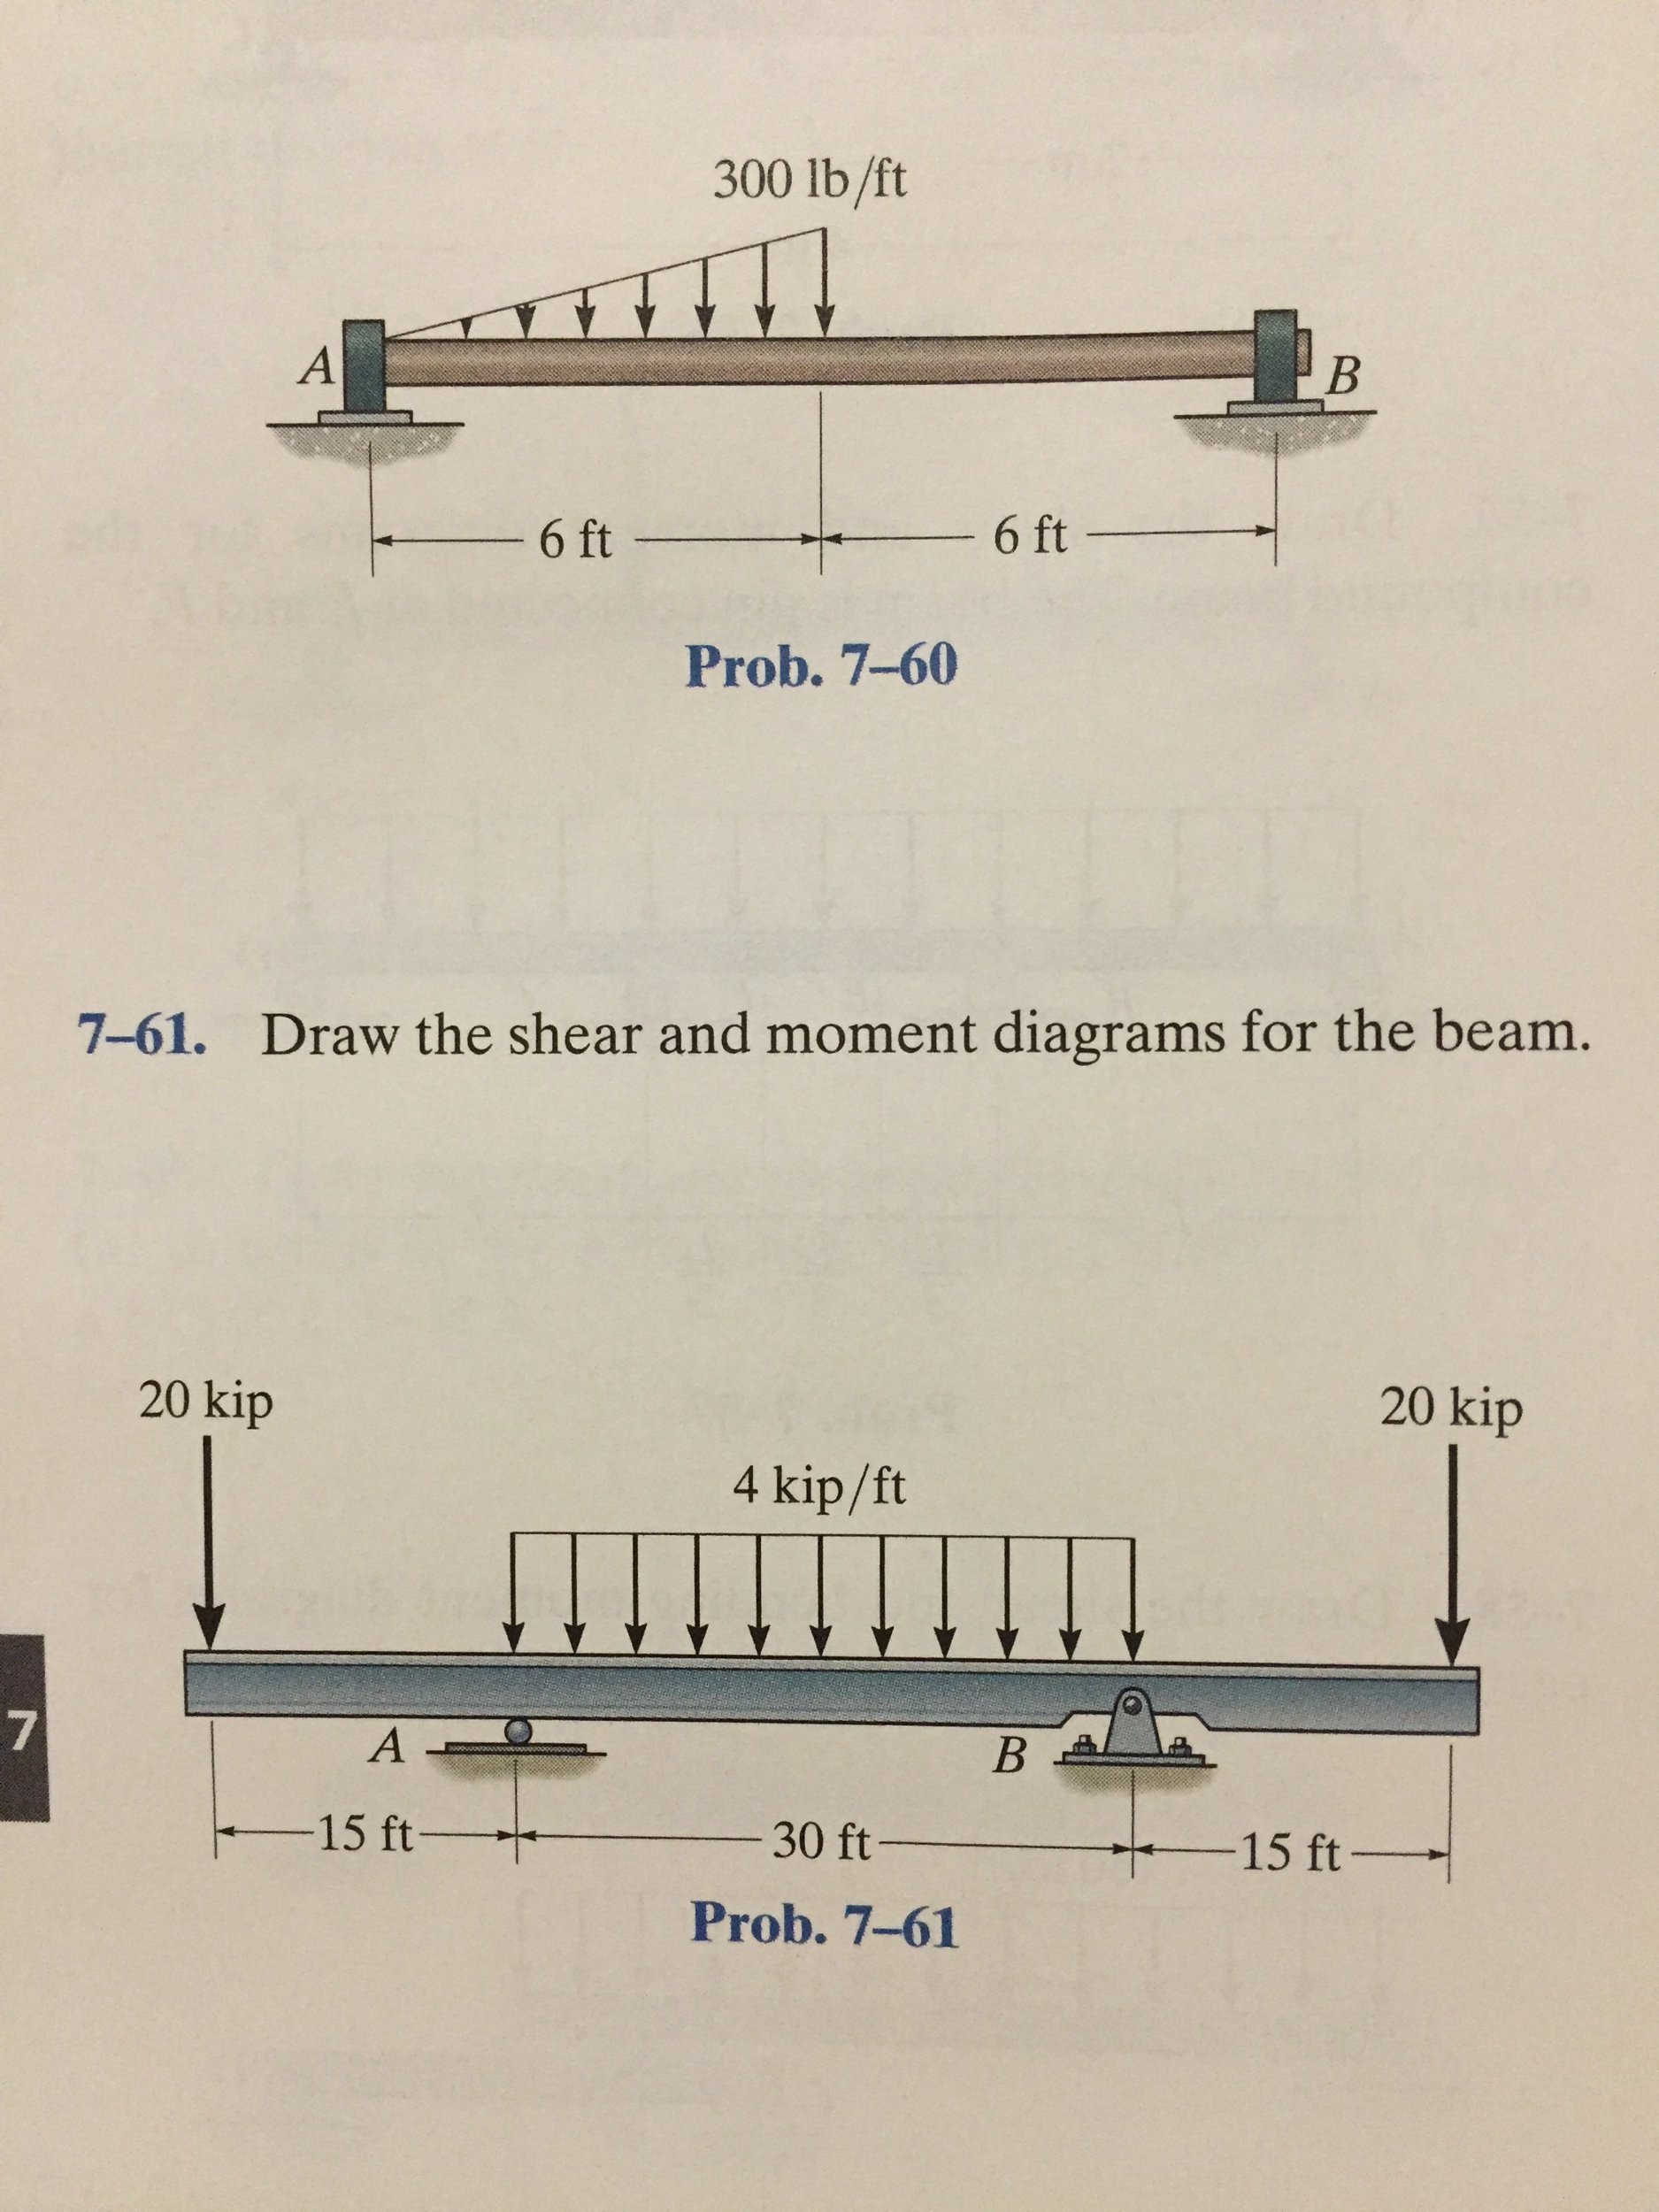 Draw The Shear And Moment Diagrams For The Beam. | Chegg.com